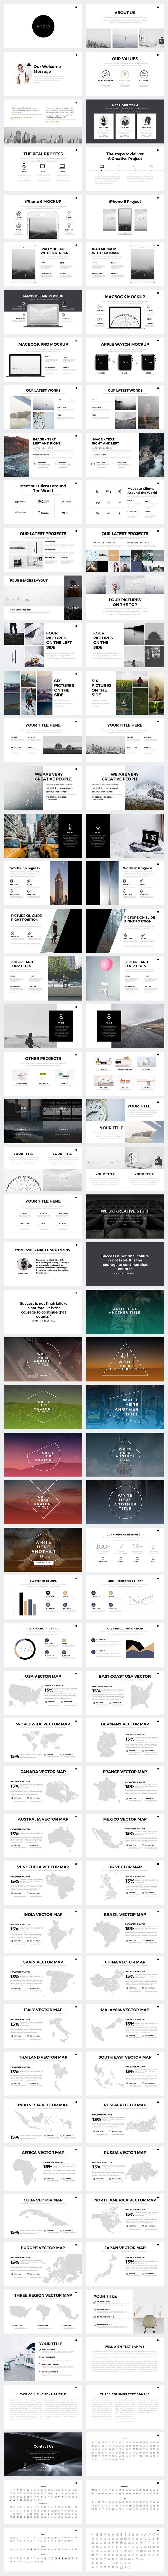 Nova Minimal Keynote Template by Slidedizer on @creativemarket